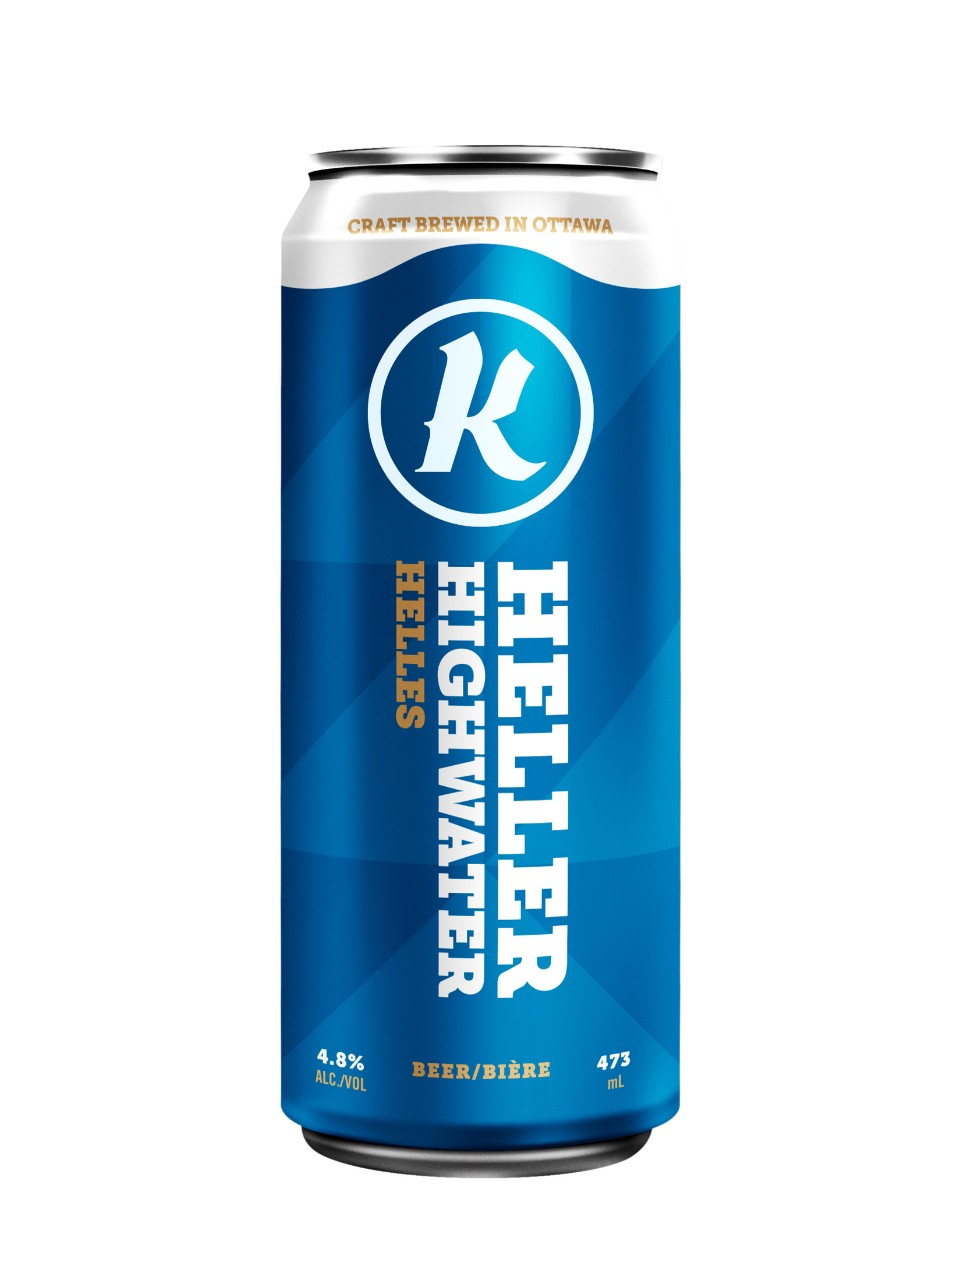 Image for Kichesippi Heller Highwater from LCBO